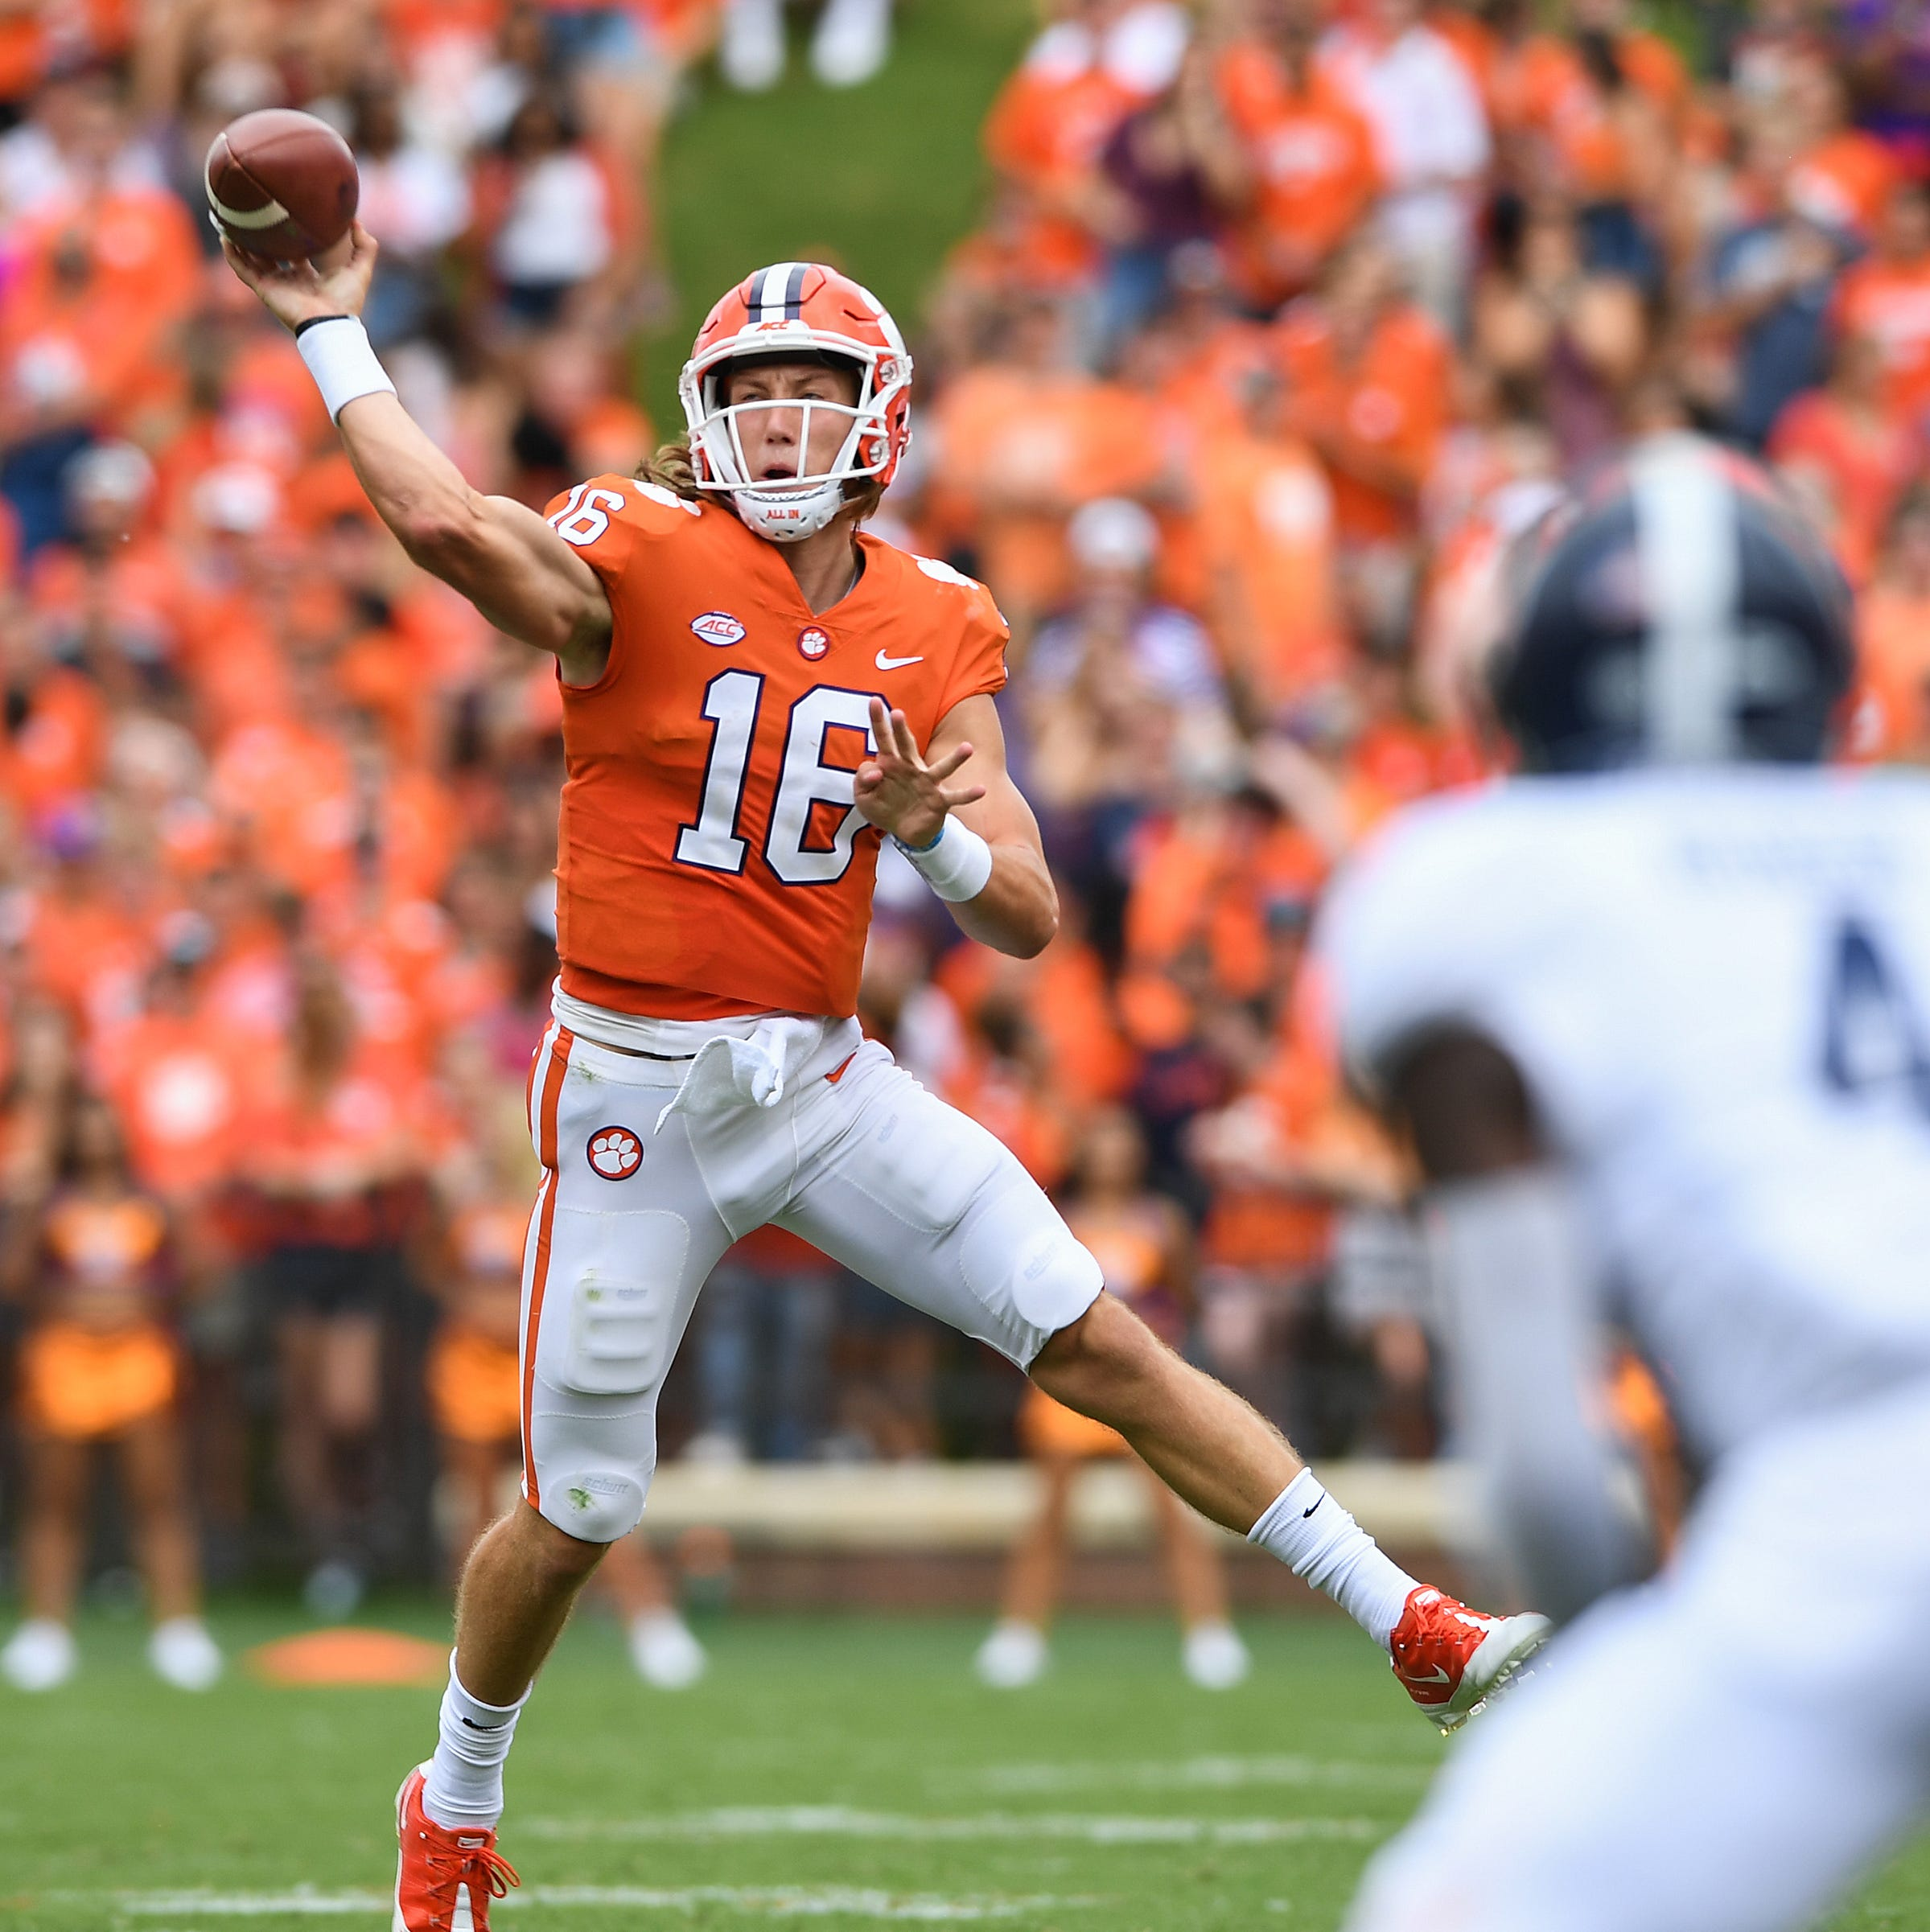 Clemson Football: Kelly Bryant injury comes at pivotal time entering ACC play